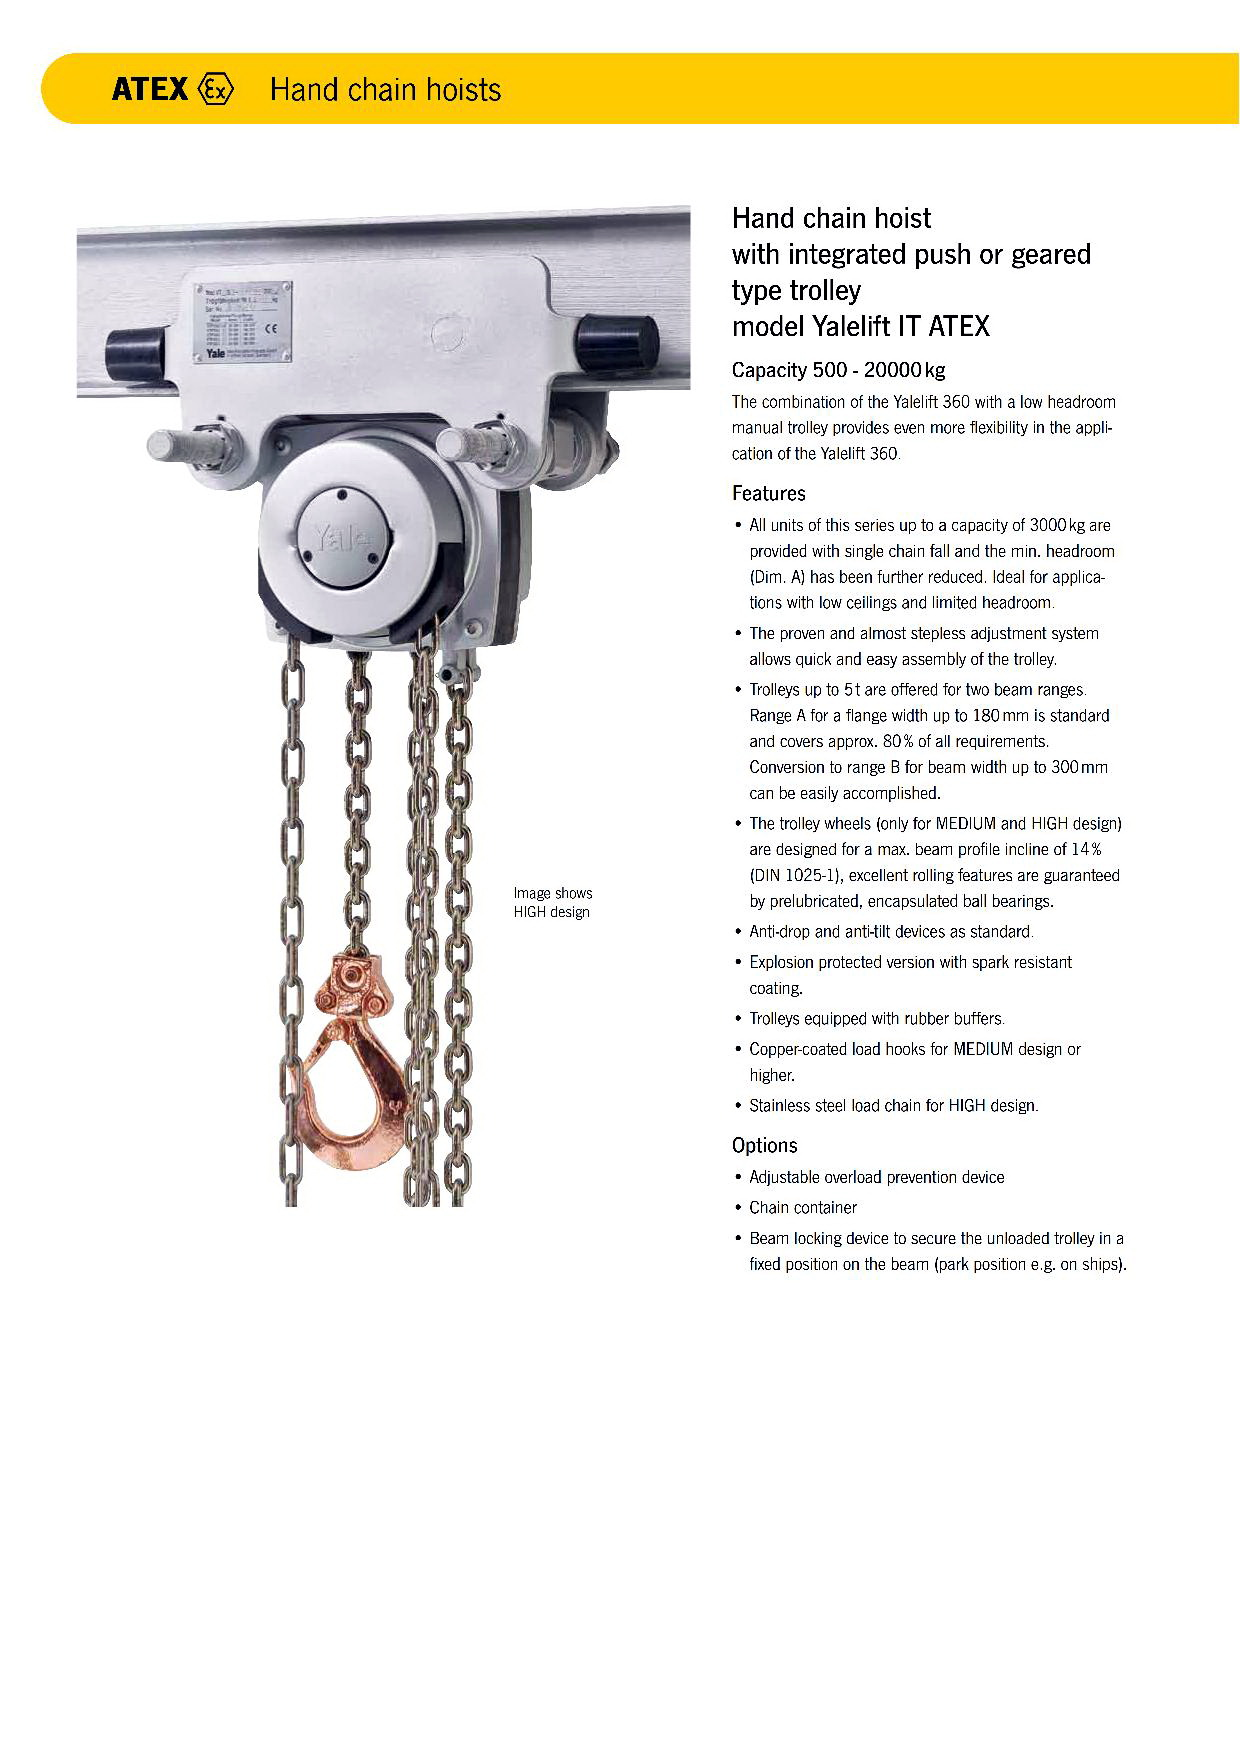 Yale Hand Chain Hoist with integrated push or geared type trolley Model Yalelift IT ATEX